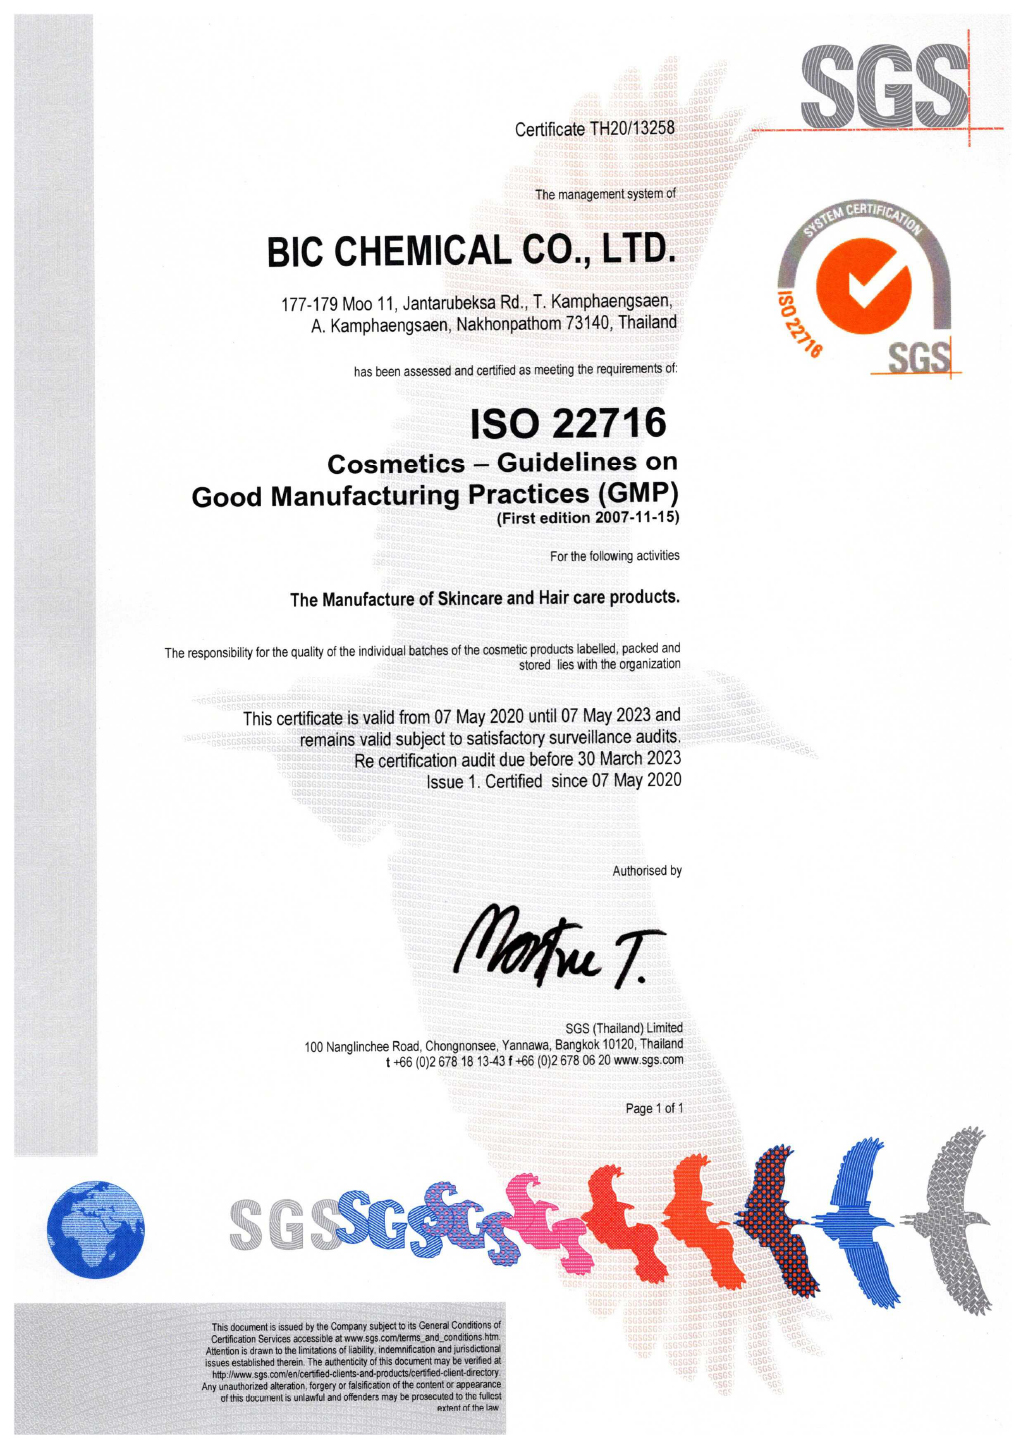 Certificate ISO 22716 The Manufacture of Skincare and Hair care products.